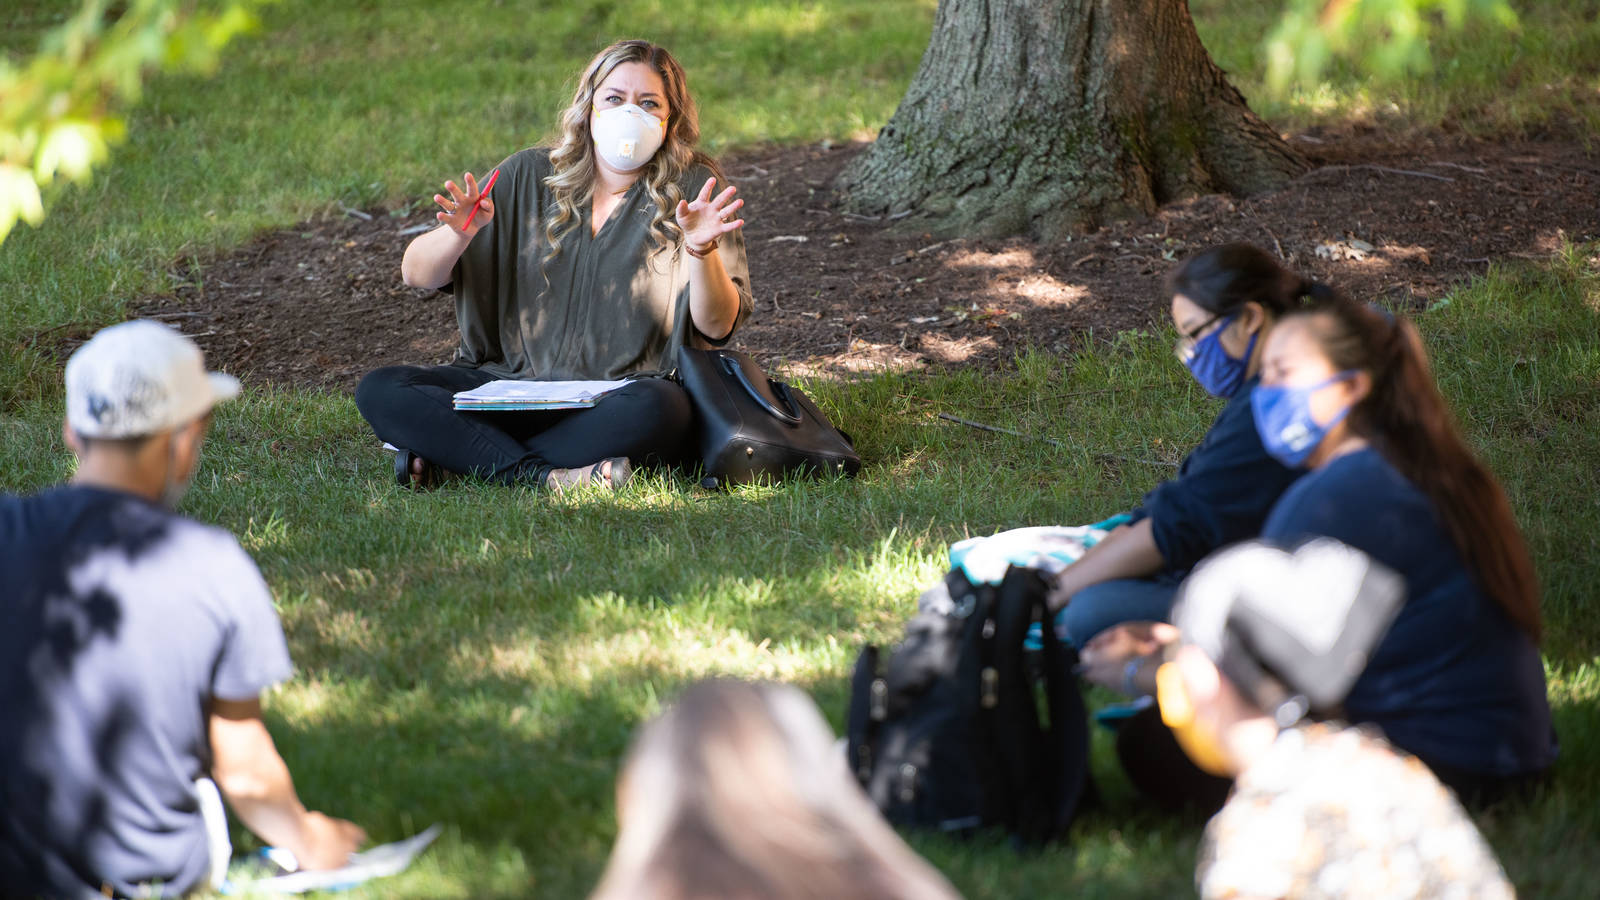 Outdoor class session, students sitting on grass